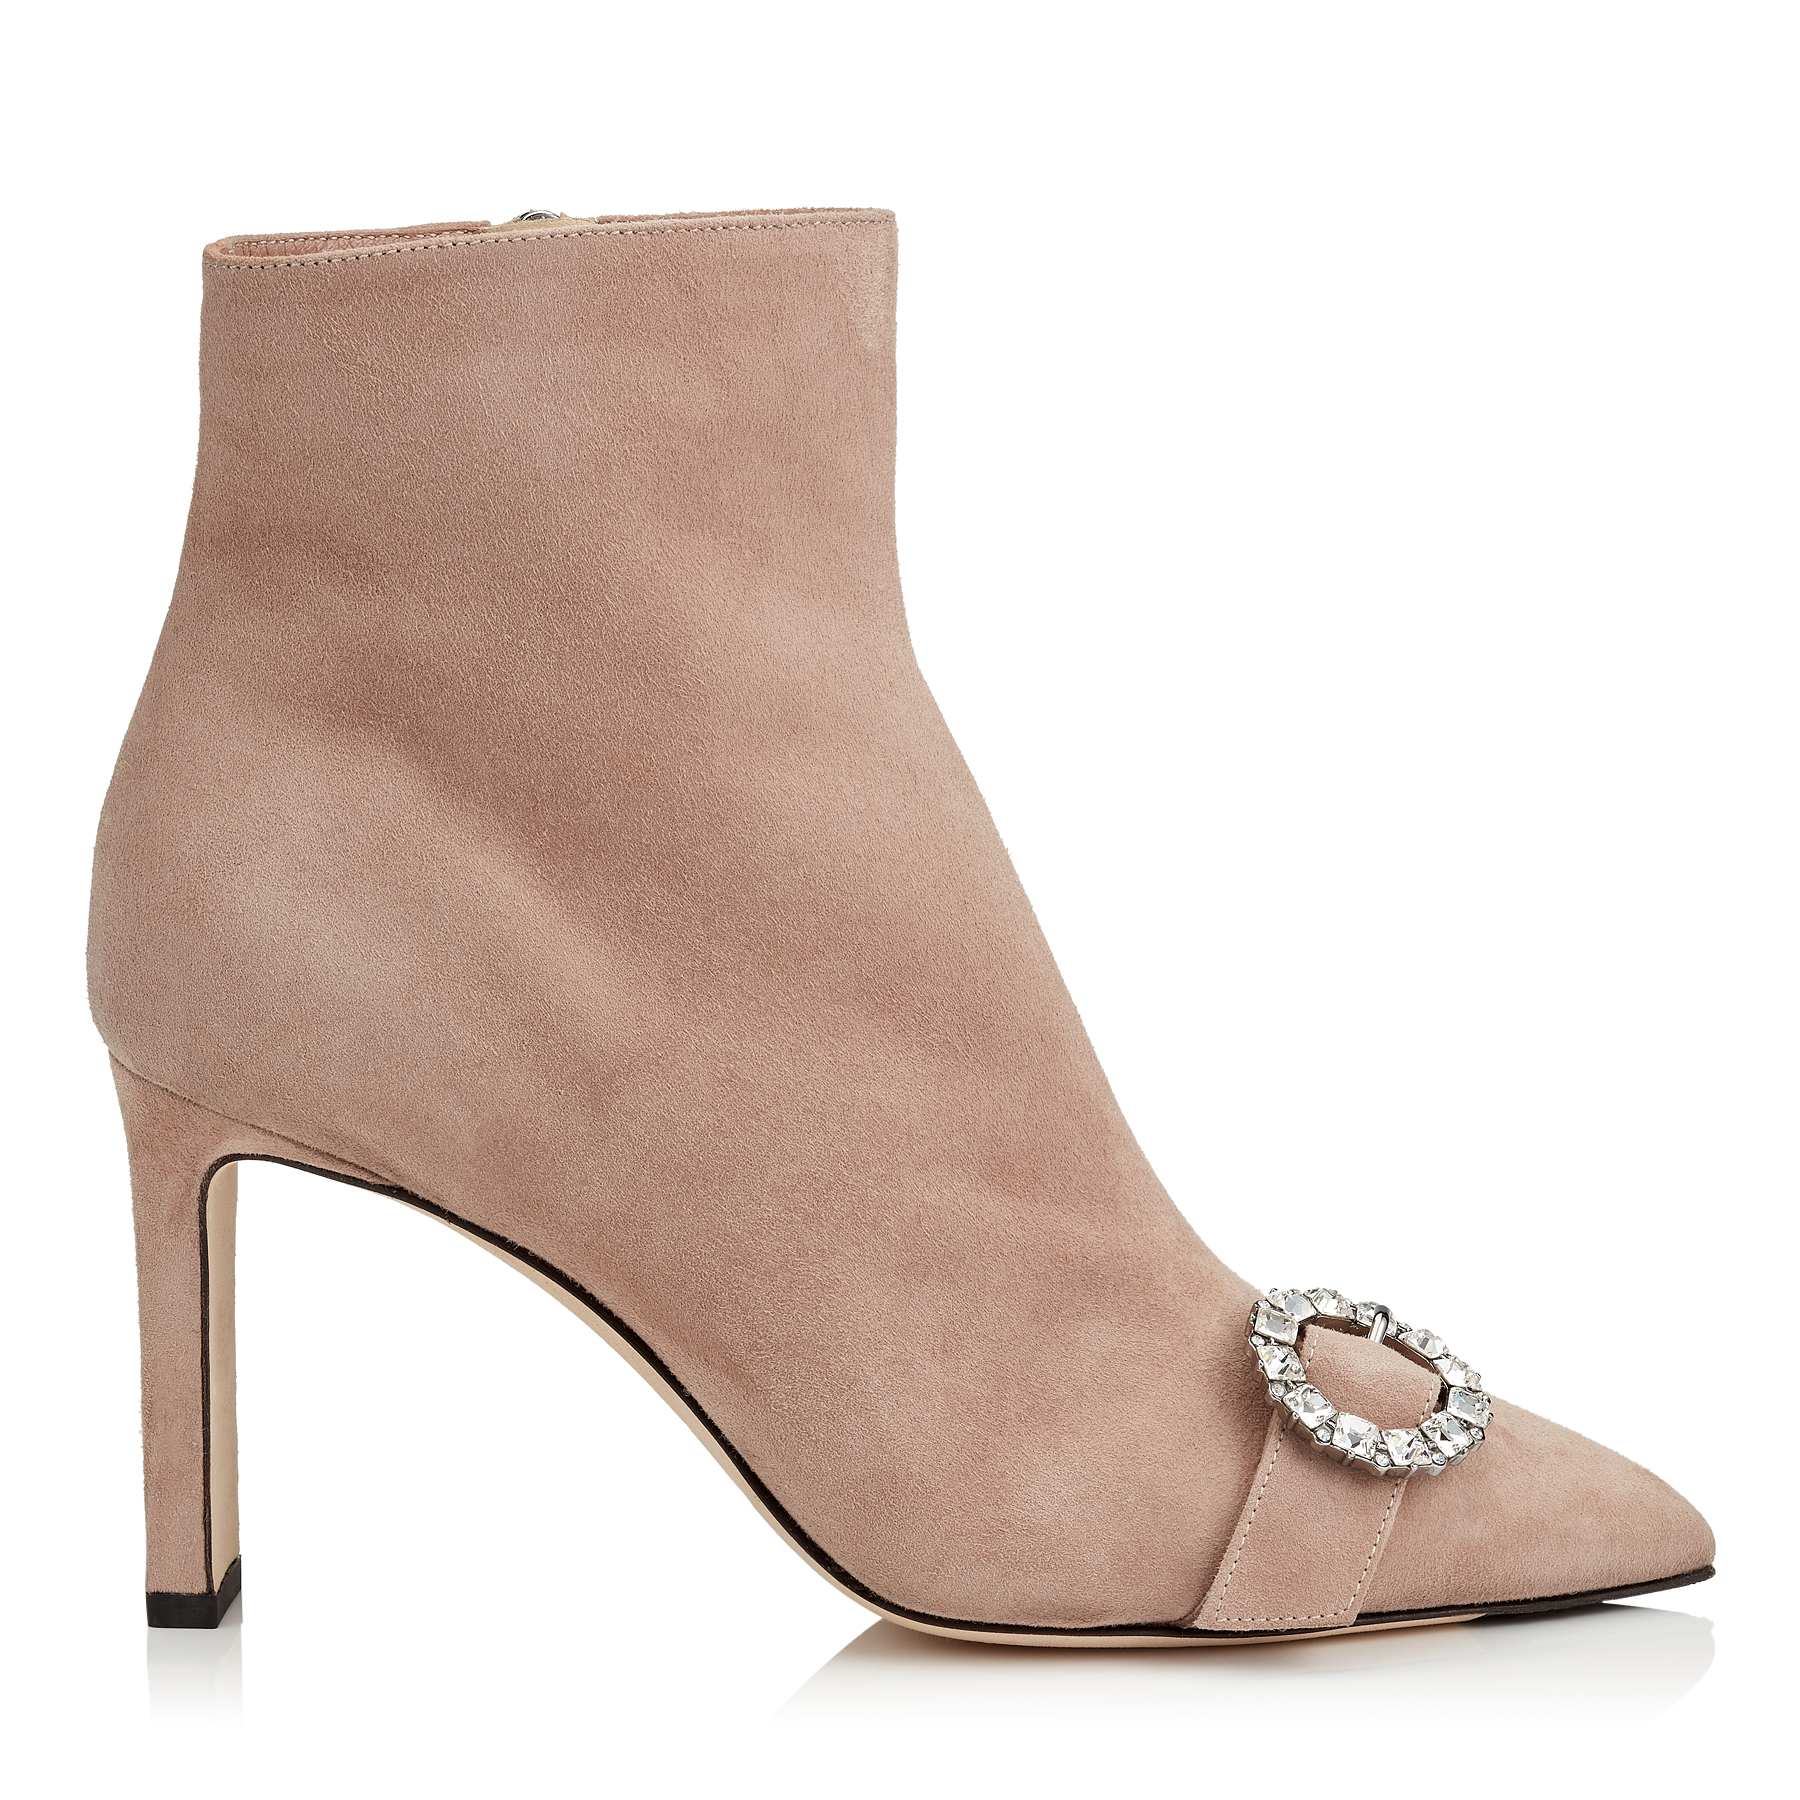 HANOVER 85 Ballet Pink Suede Booties with Crystal Buckle by Jimmy Choo